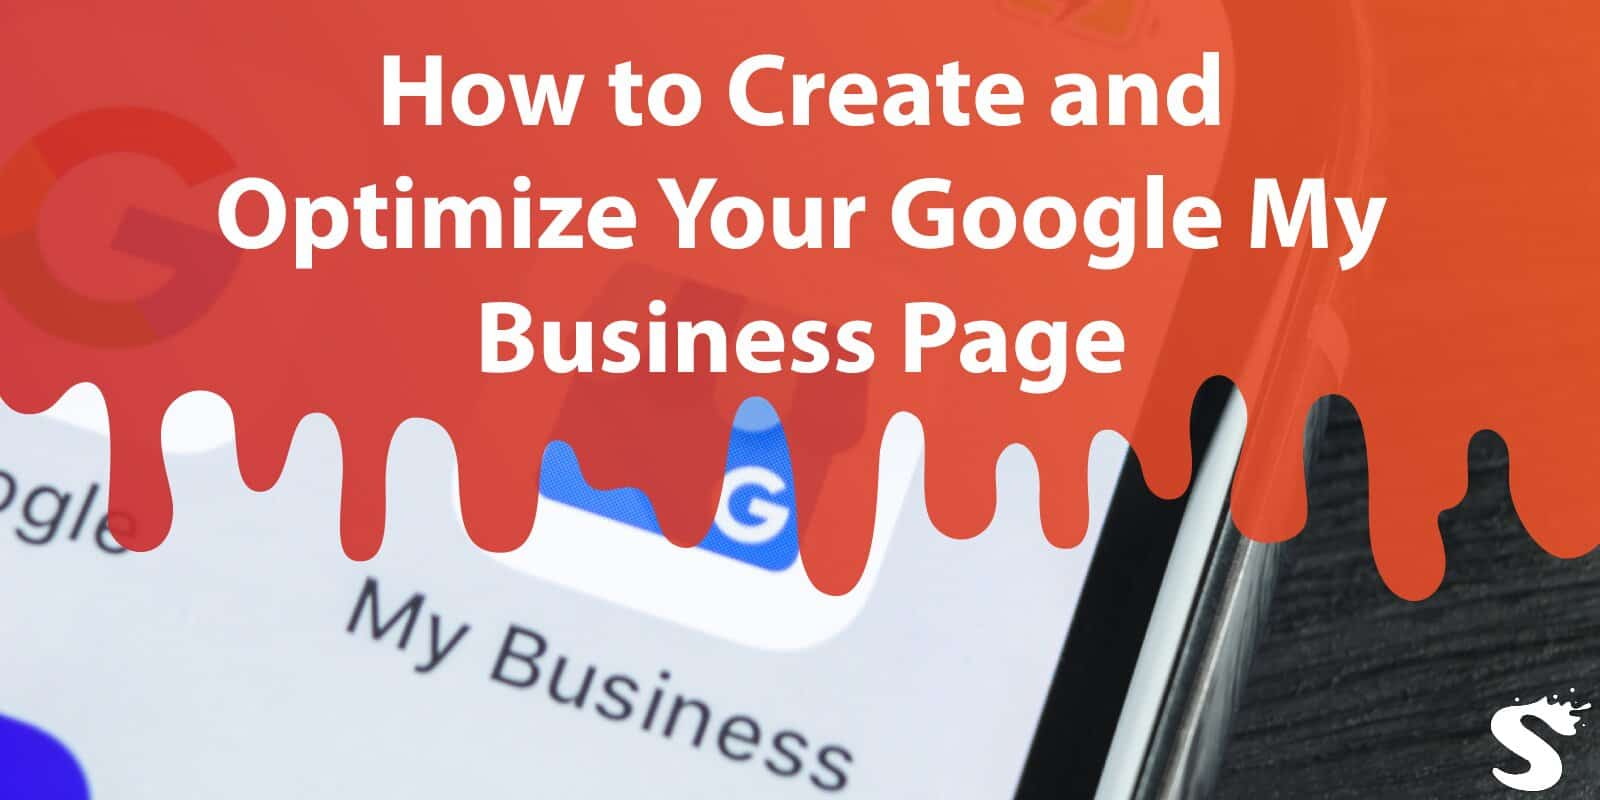 How to Create and Optimize Your Google My Business Page: Quick and Simple Tutorial